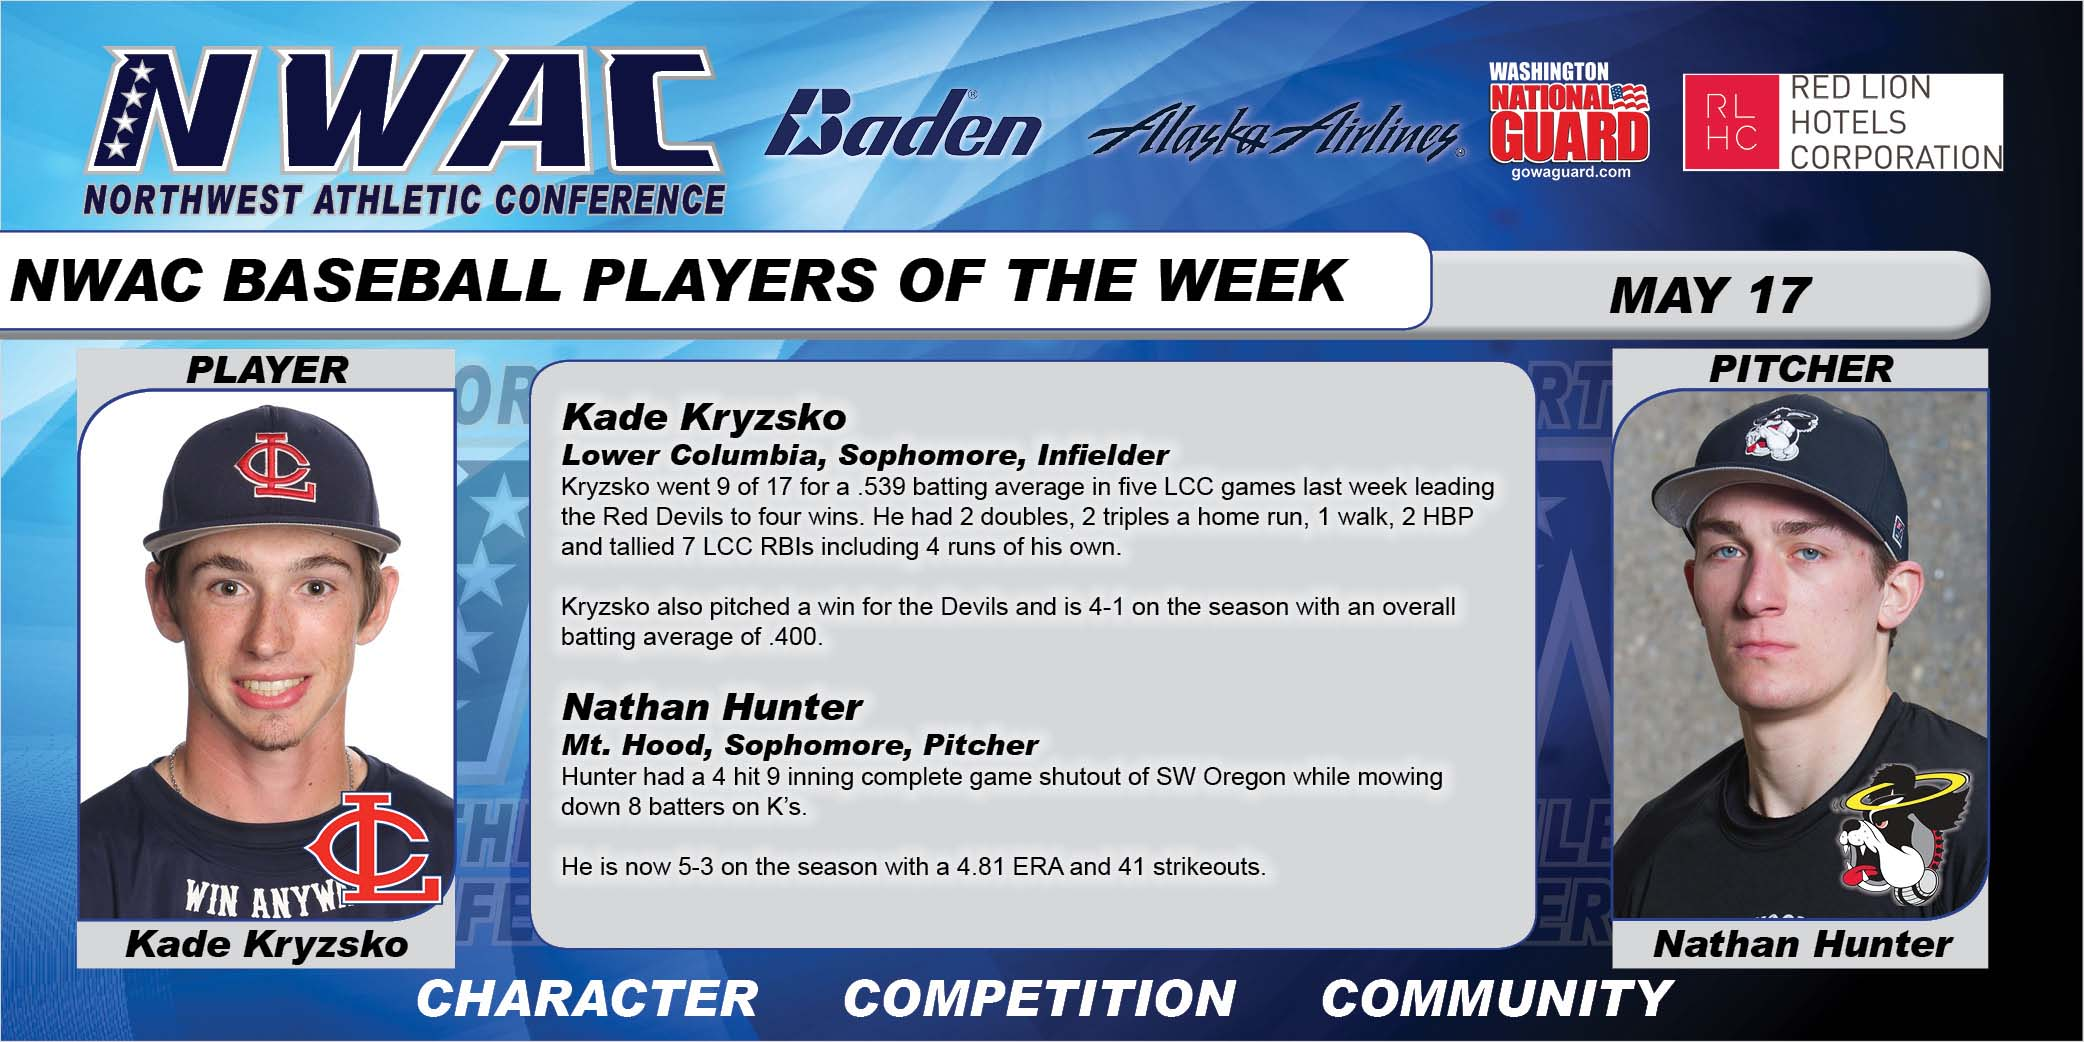 Photos of Baseball Players of the Week